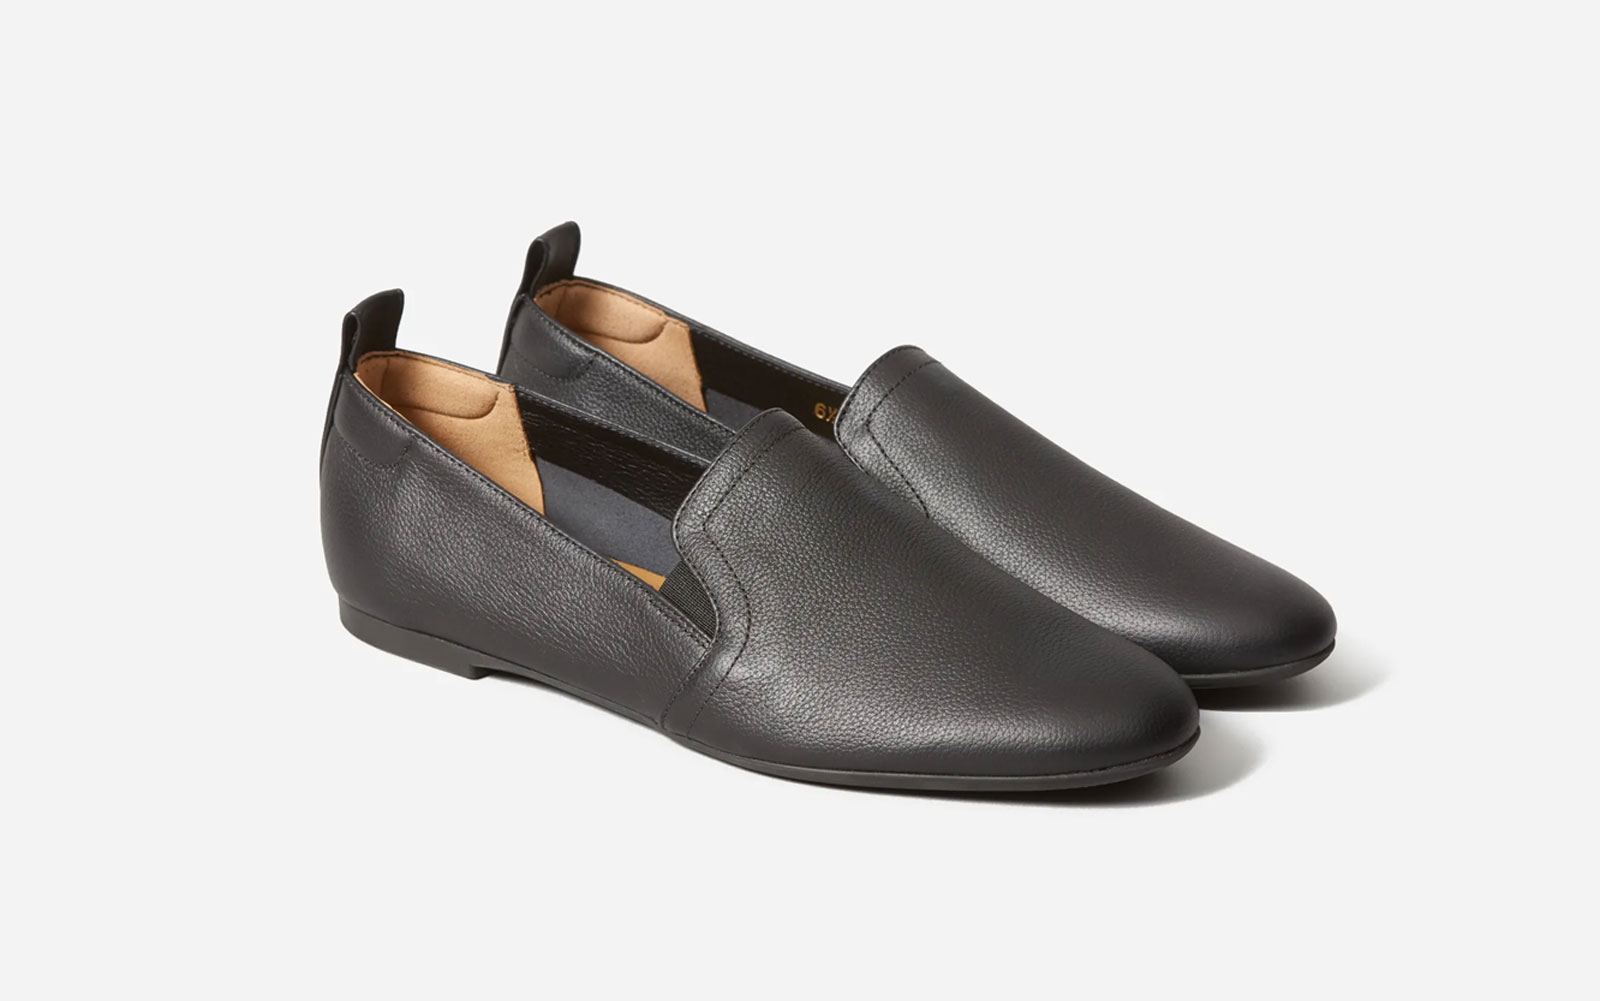 Black Leather Slip-on Loafers